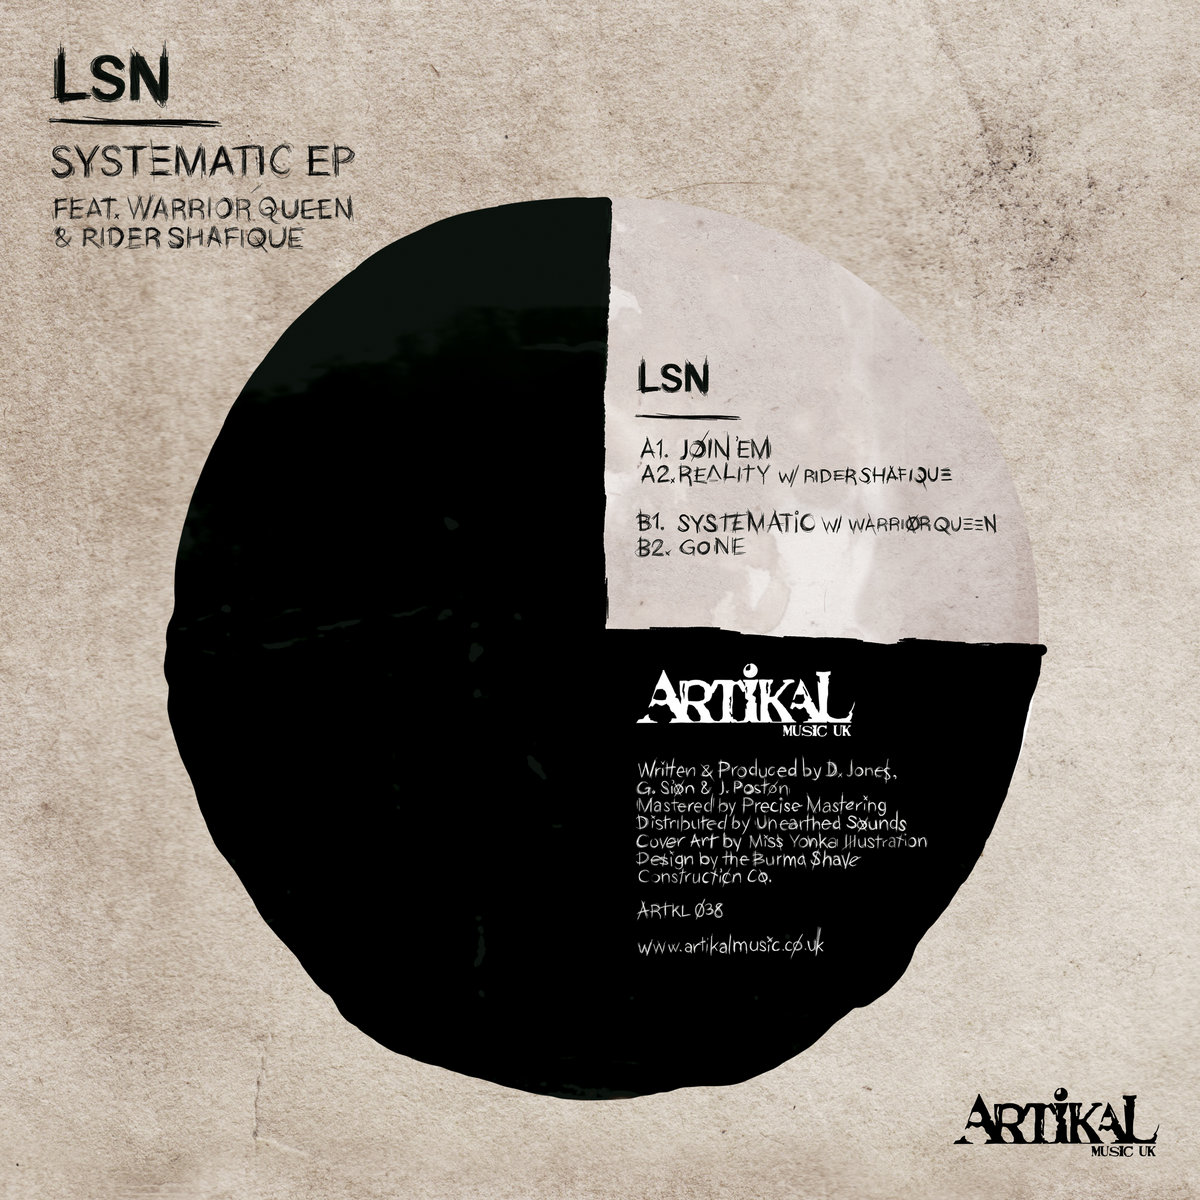 Lsn Systematic Ep A1 Join Em A2 Reality Ft Rider Shafique B1 Warrior Queen B2 Gone